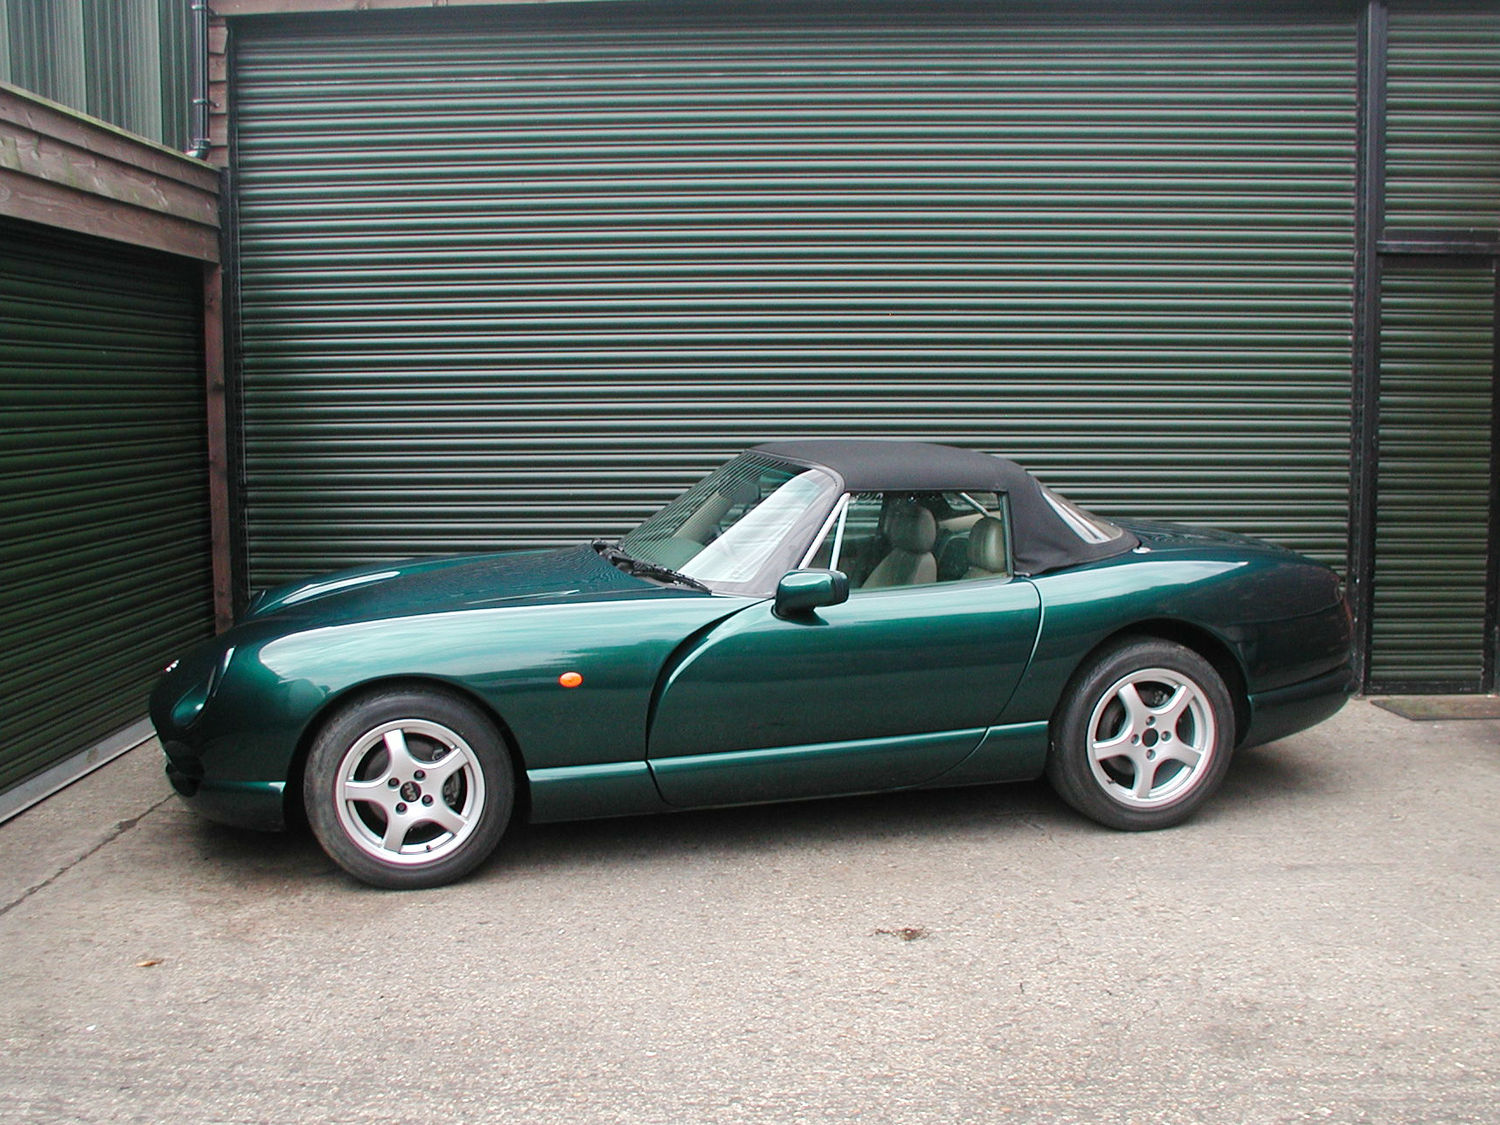 SOLD - 1998 Green TVR Chimaera